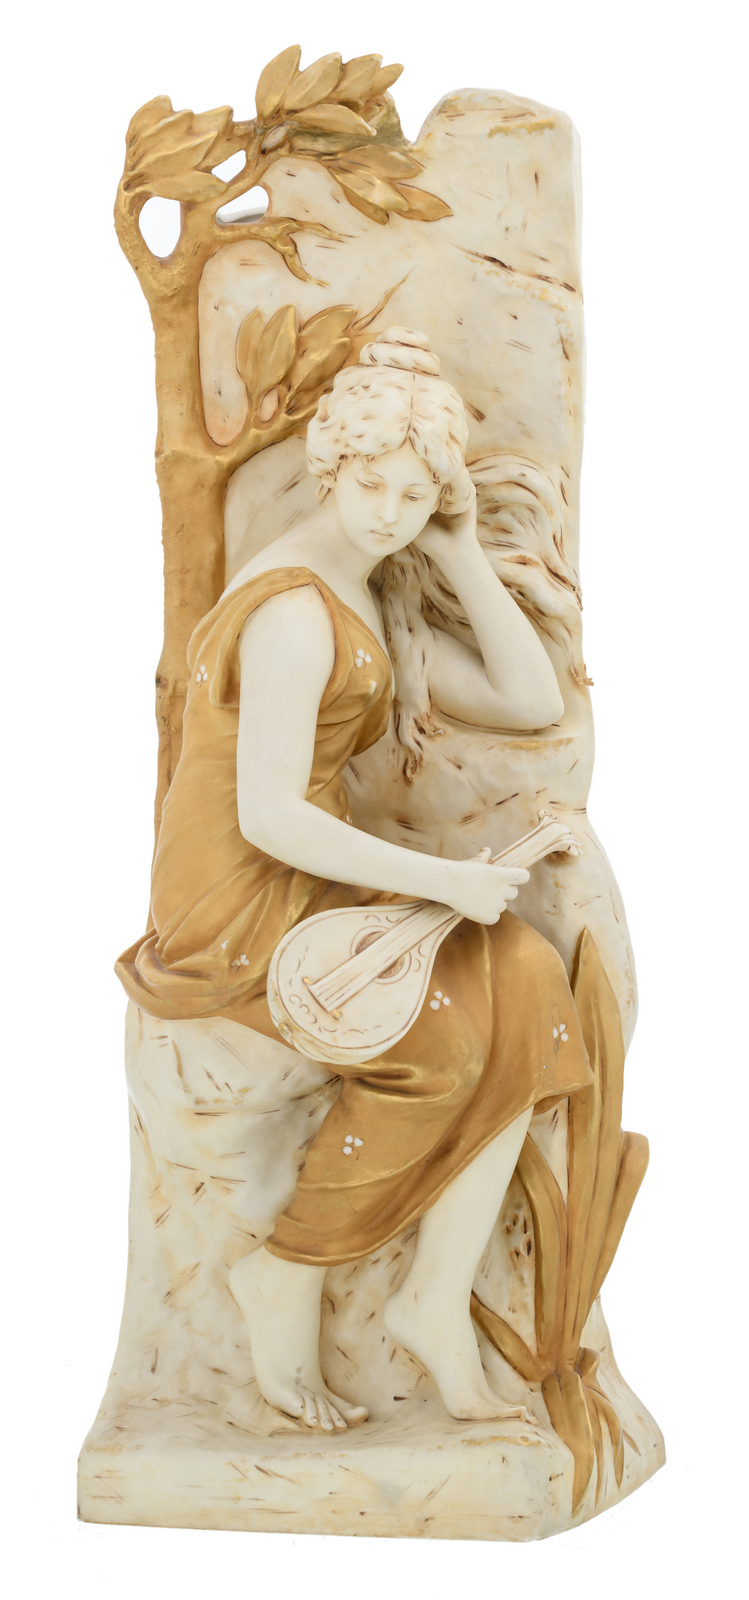 A polychrome decorated biscuit vase depicting a female musician, about 1900, marked Royal Dux, H 58,5 cm